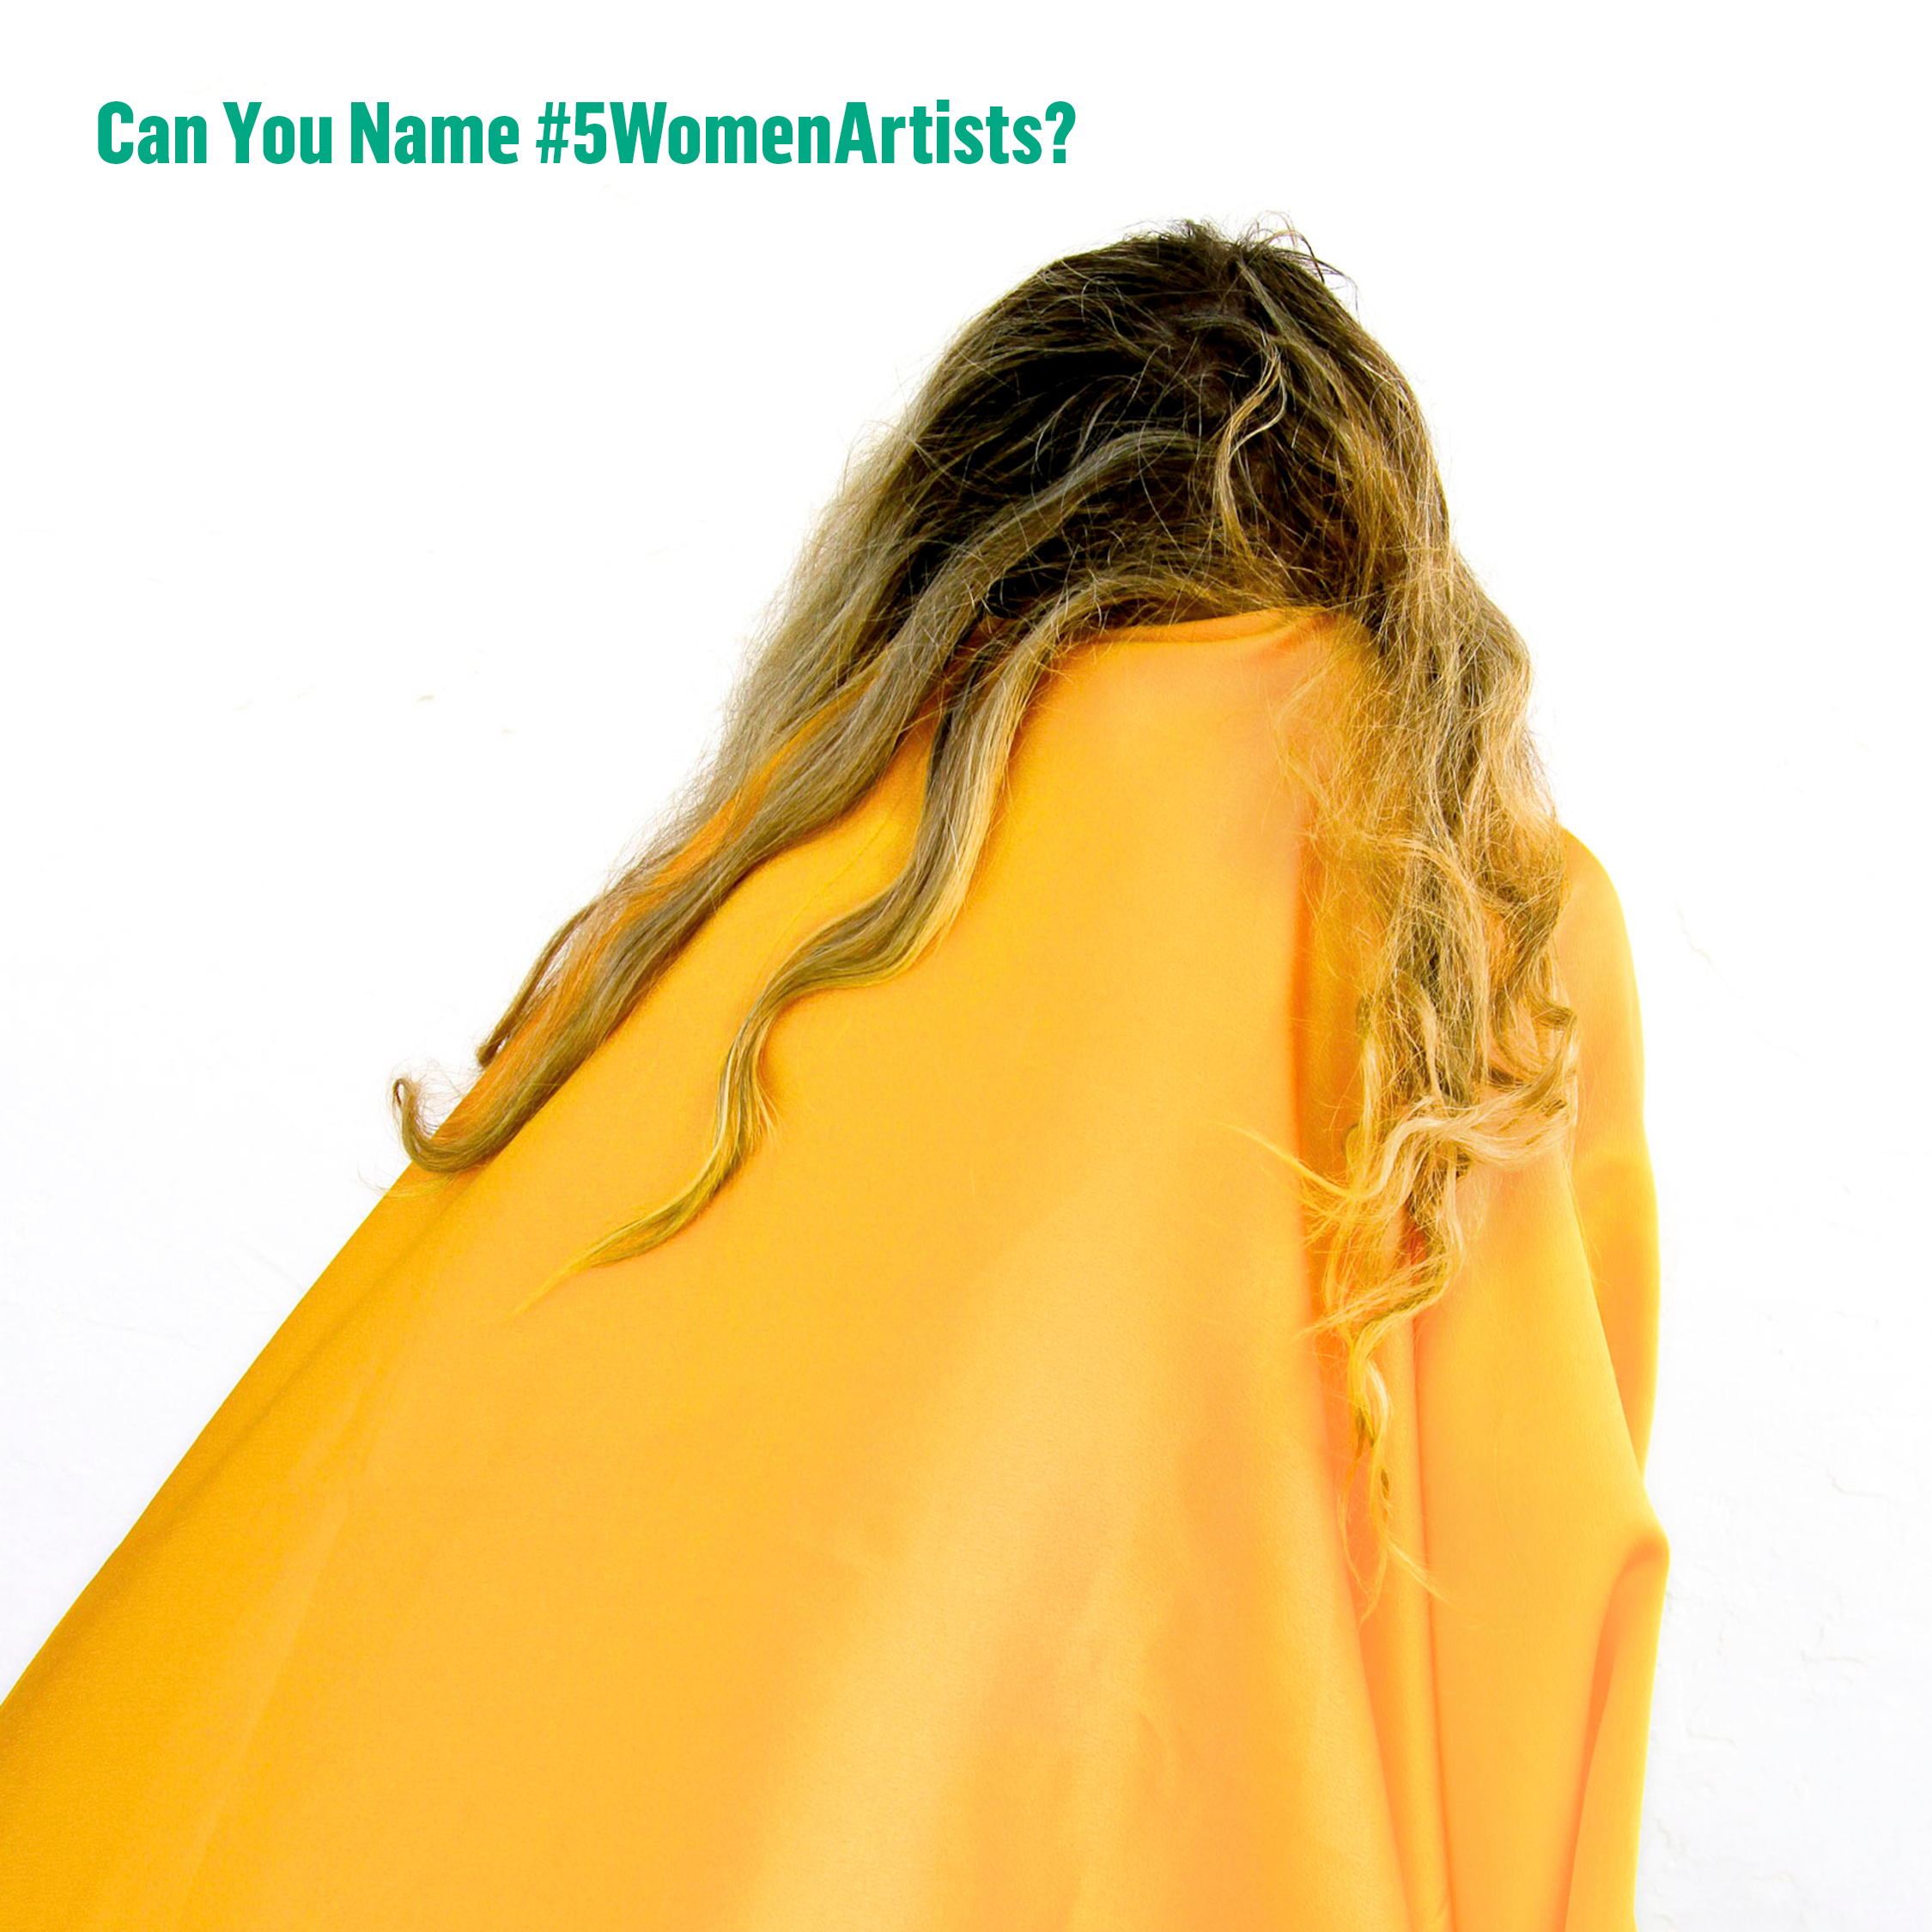 """A figure with long wavy blonde hair stands in front of a white wall with her head down. The figure's face and body are covered by vibrant yellow fabric that drapes to the floor. The words """"Can You Name #5WomenArtists?"""" are written in green in the upper left corner of the image."""